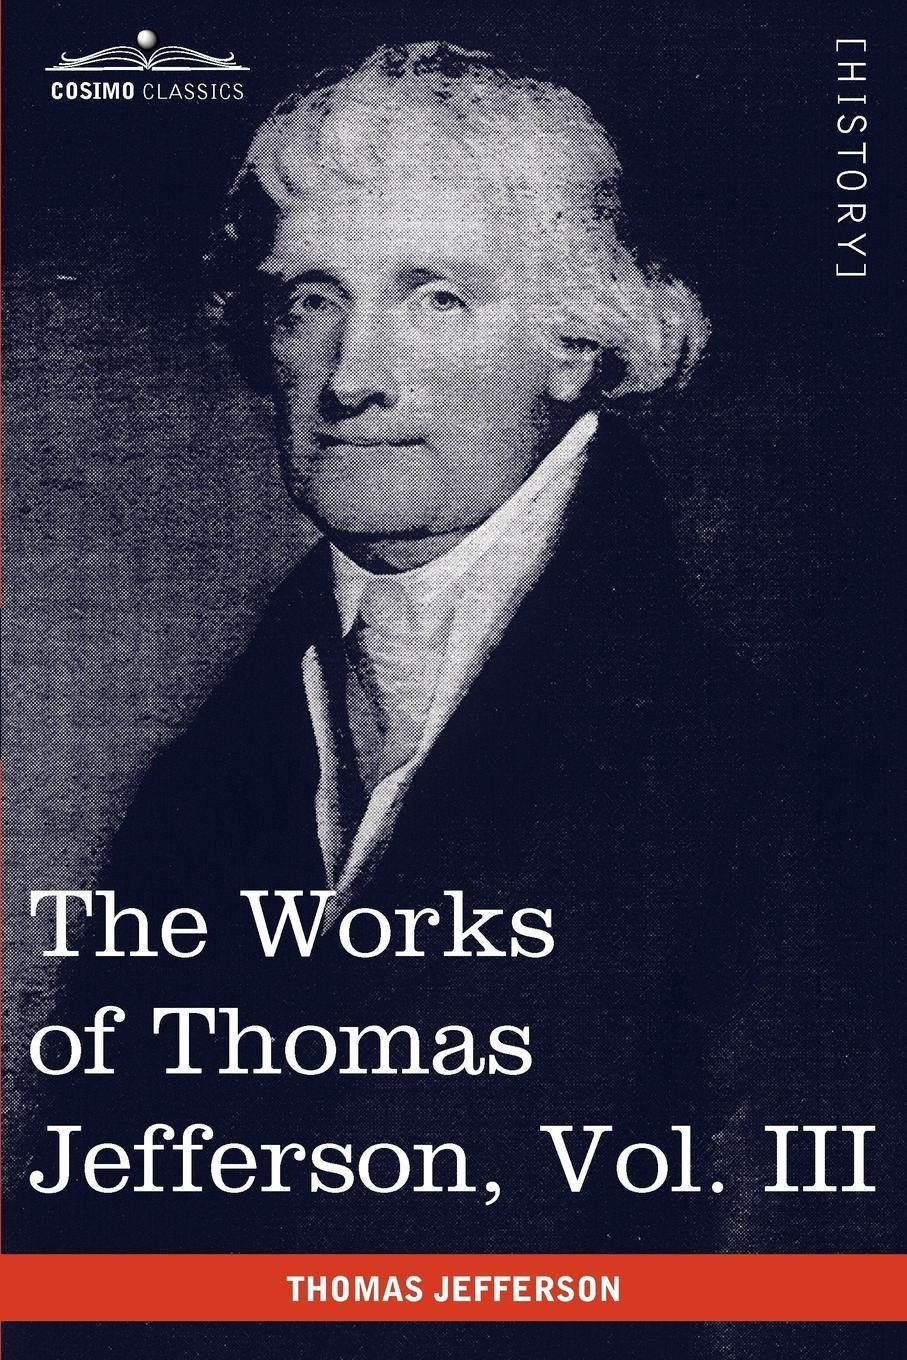 Download The Works of Thomas Jefferson, Vol. III (in 12 Volumes): Notes on Virginia I, Correspondence 1780 - 1782 pdf